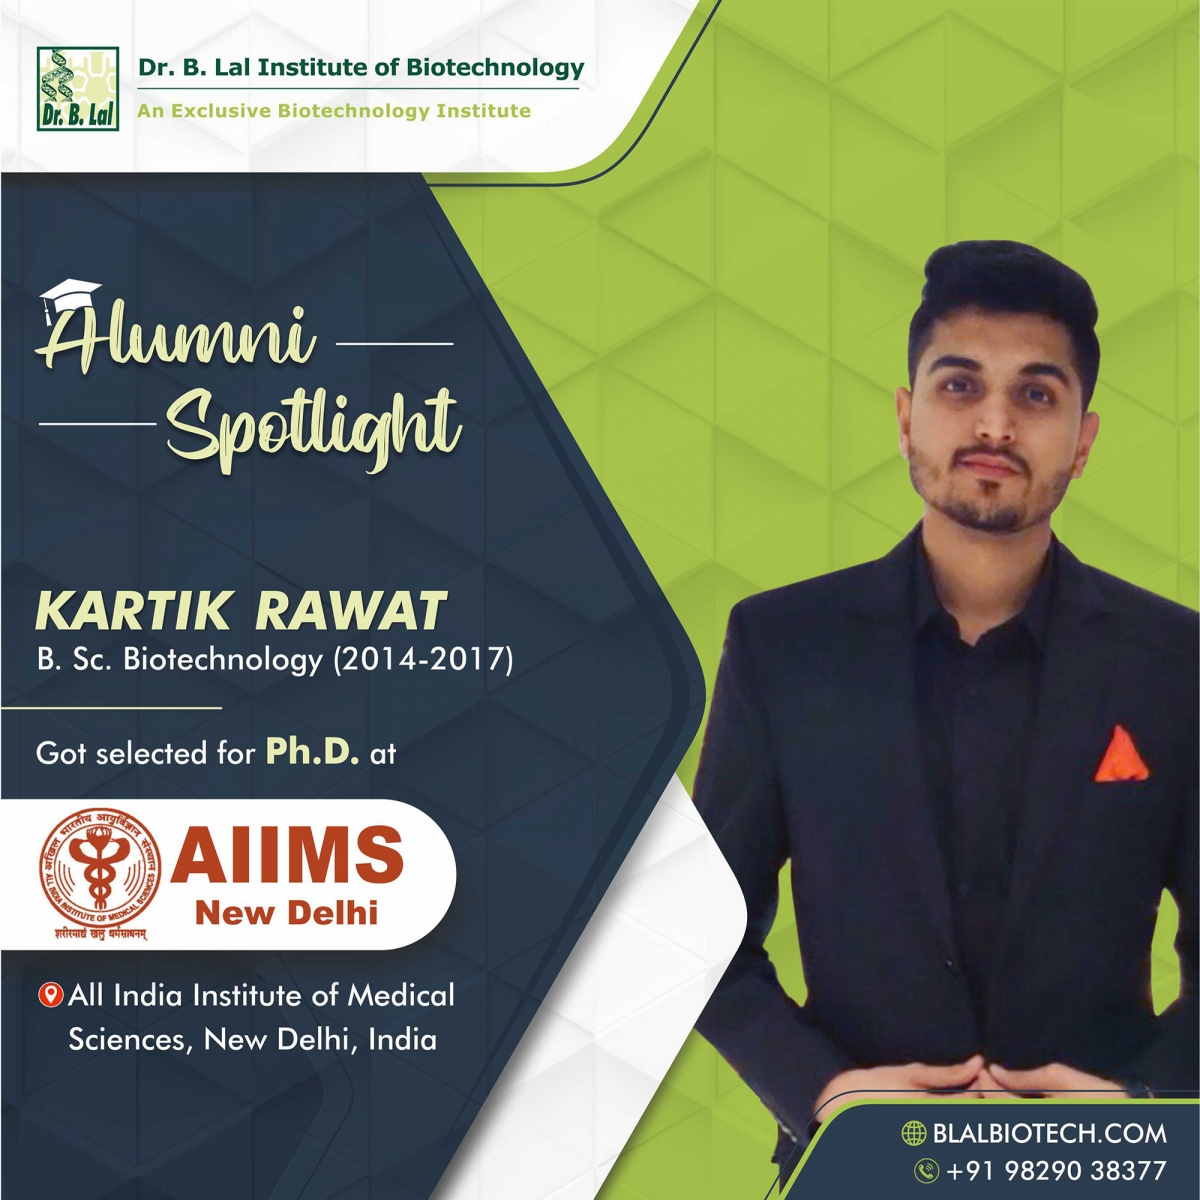 Mr. Kartik Rawat | Selected for Ph.D. at All India Institute of Medical Sciences, New Delhi